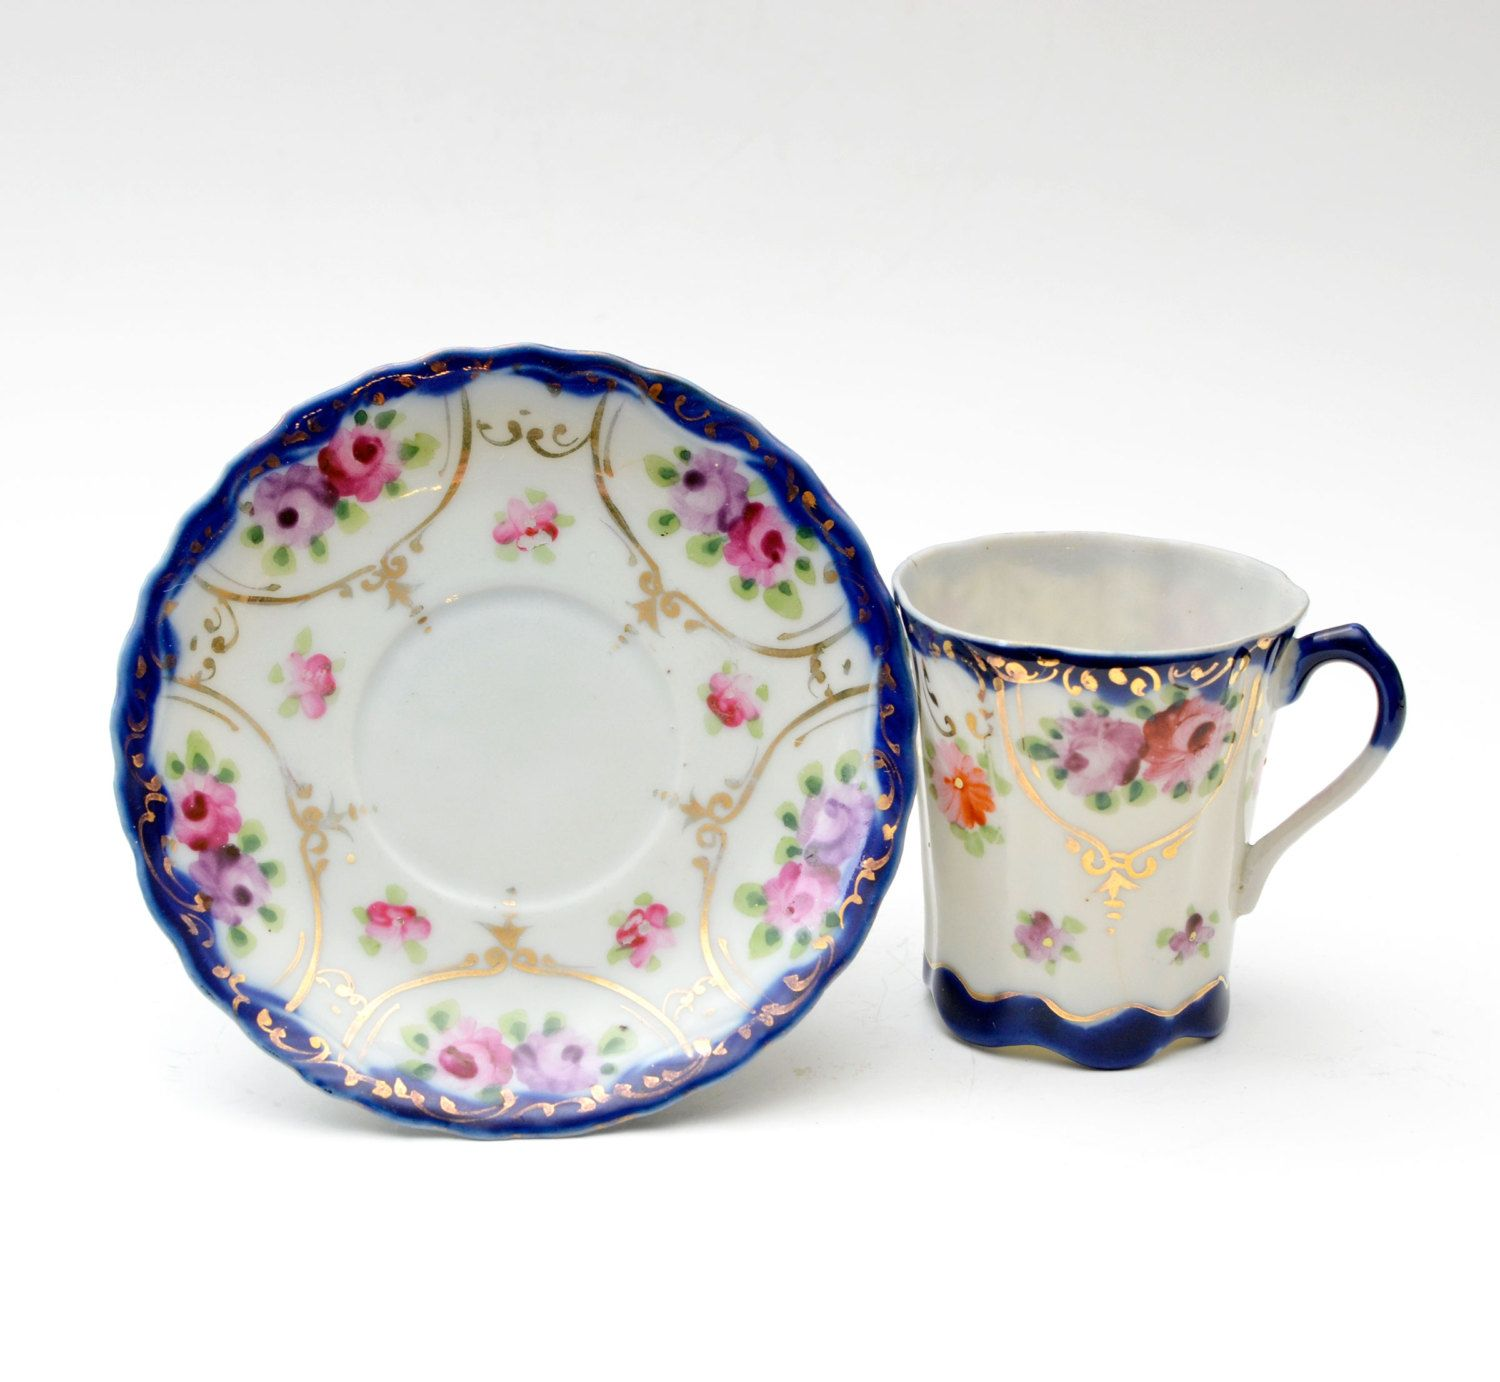 Vintage Hand Painted Nippon Tea Cup and Saucer Floral Cobalt Blue with Gold Accents Victorian Style  sc 1 st  Pinterest & Vintage Hand Painted Nippon Tea Cup and Saucer Floral Cobalt Blue ...